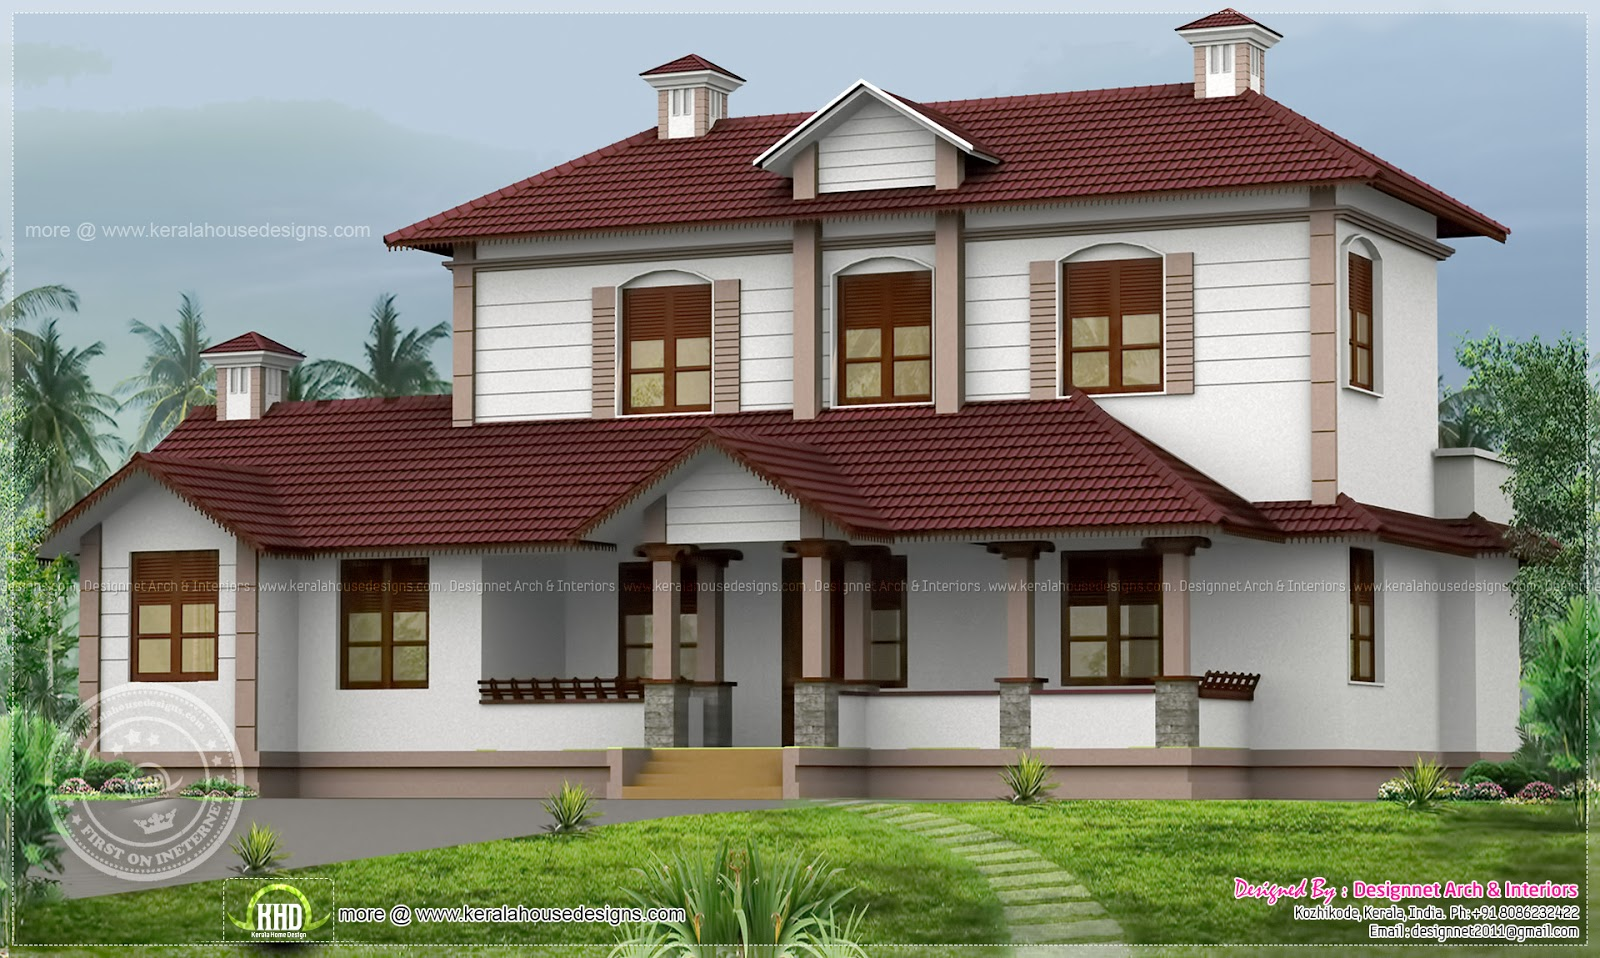 Renovation model of an old house kerala home design and for Old home designs